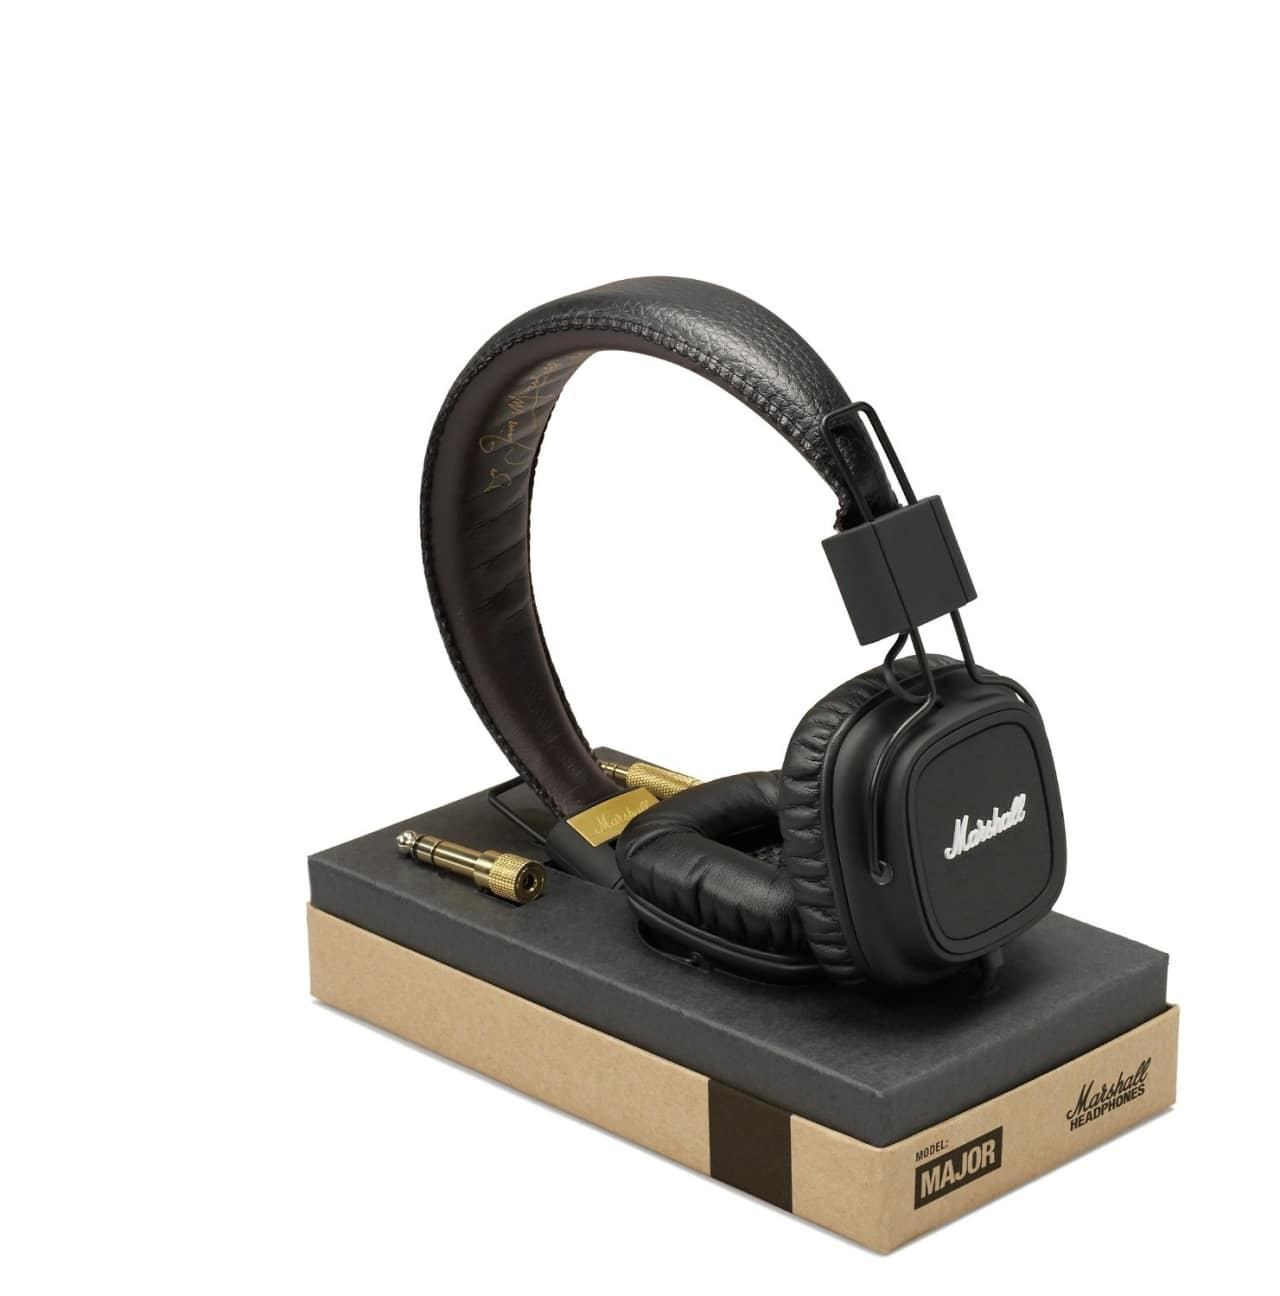 Marshall Audio Major On Ear Stereo Headphones With Mic And Reverb Beyerdynamic Headphone Dtx 350m